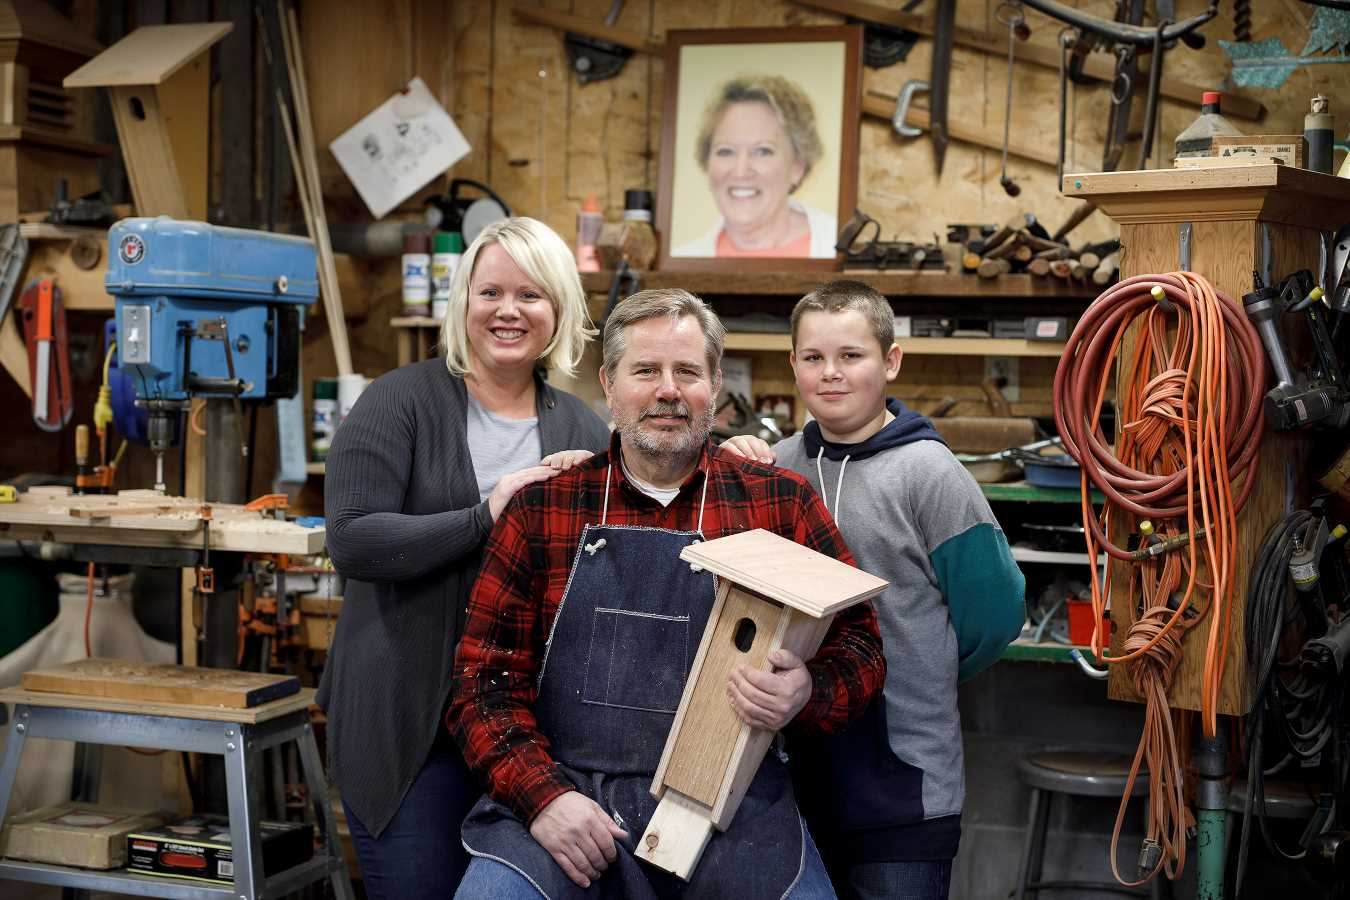 Widower Builds Hundreds of Bluebird Houses to Heal After Wife's Death from Cancer